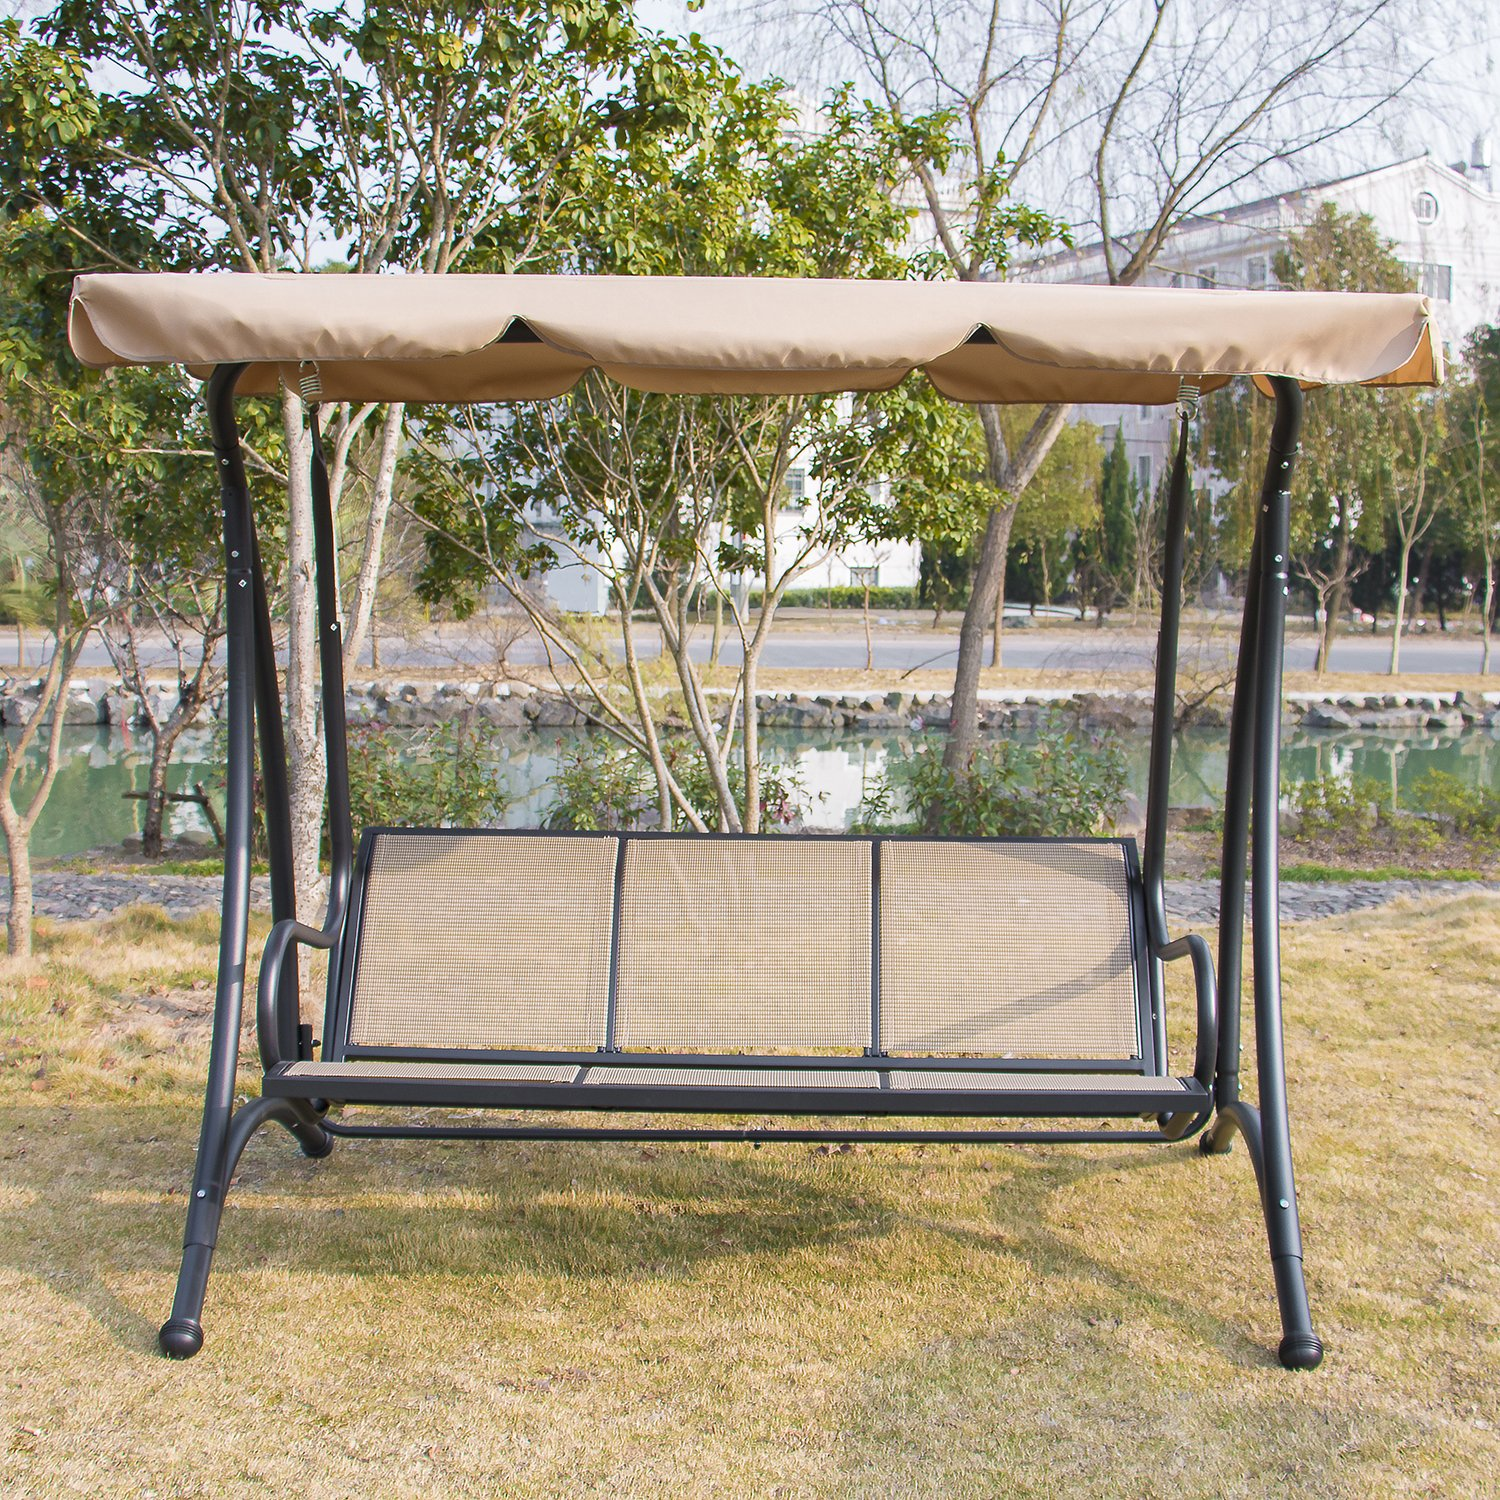 Silverylake Outdoor Swing Chair Bench Canopy Hammock Seats 3 Person Patio Deck Furniture Cushions Weather Resistant